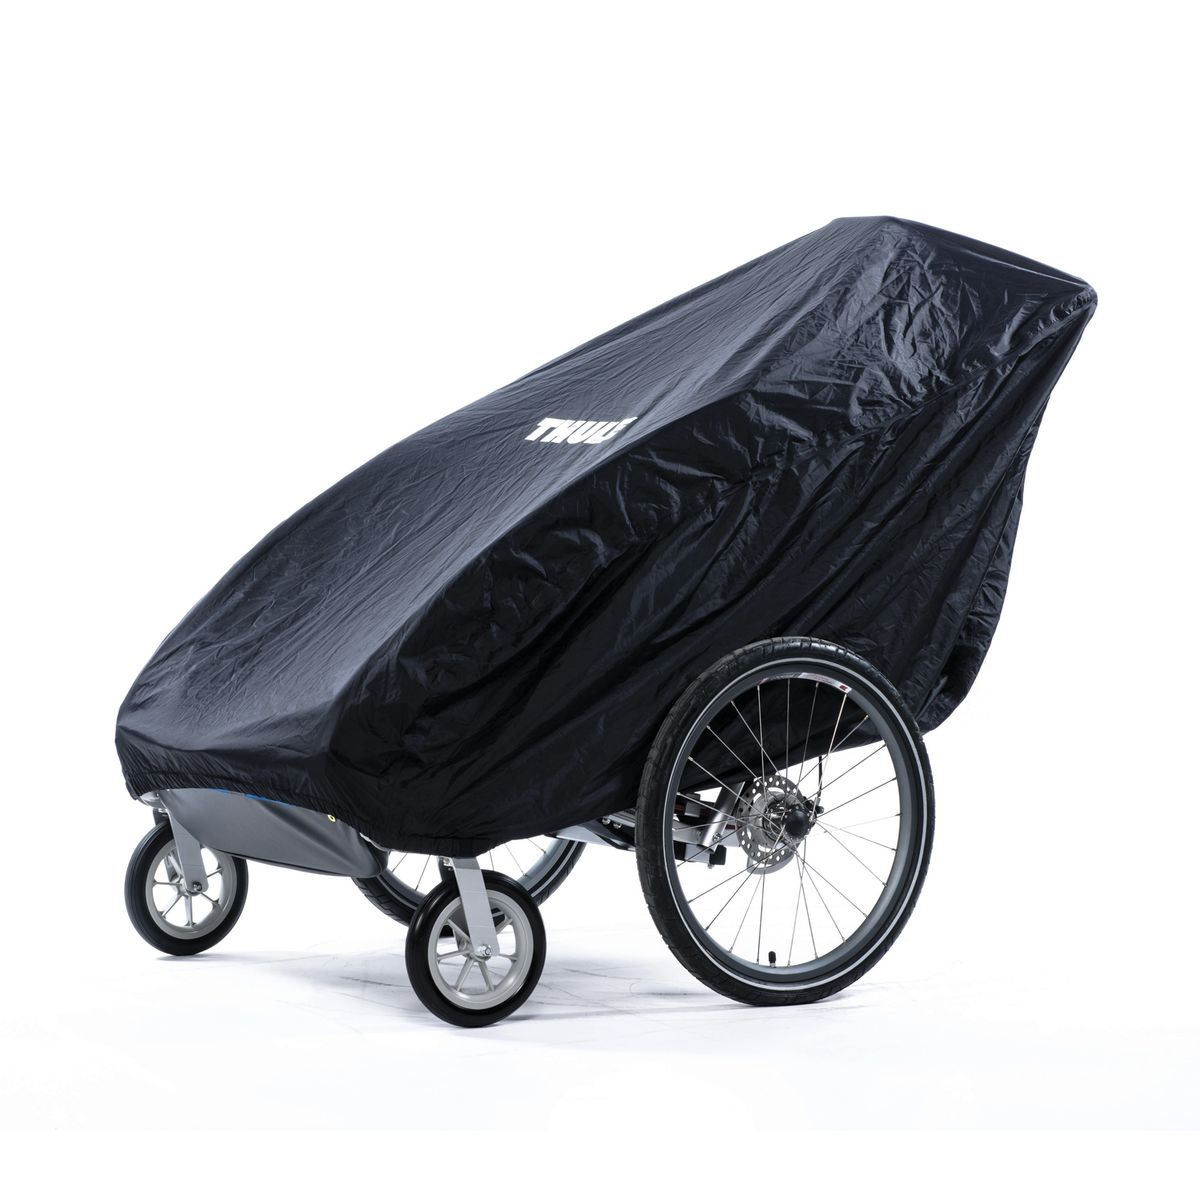 Chariot Protective cover for child bike trailer